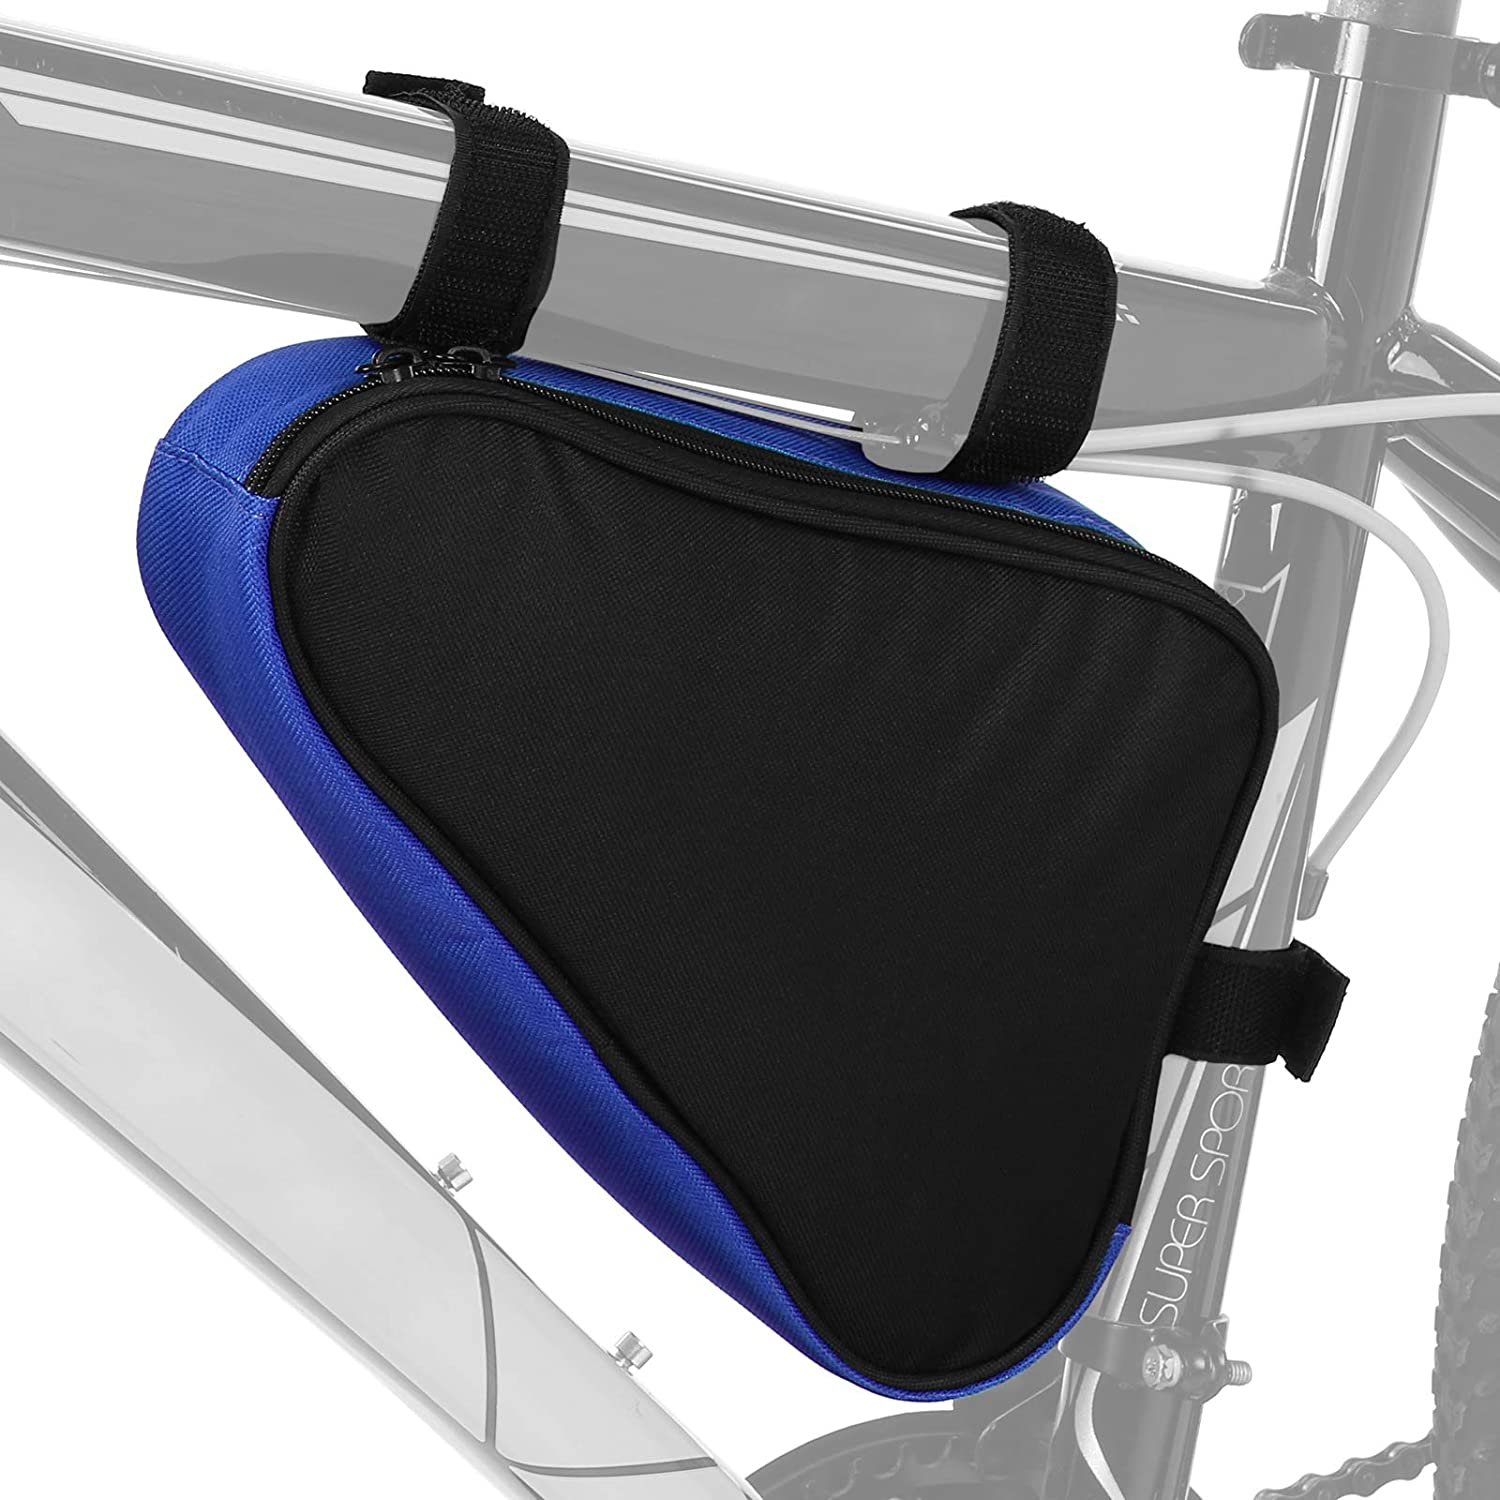 WBBNB Some reservation Bike Bag Cheap super special price Front Pipe Handlebar Waterp Polyester Frame